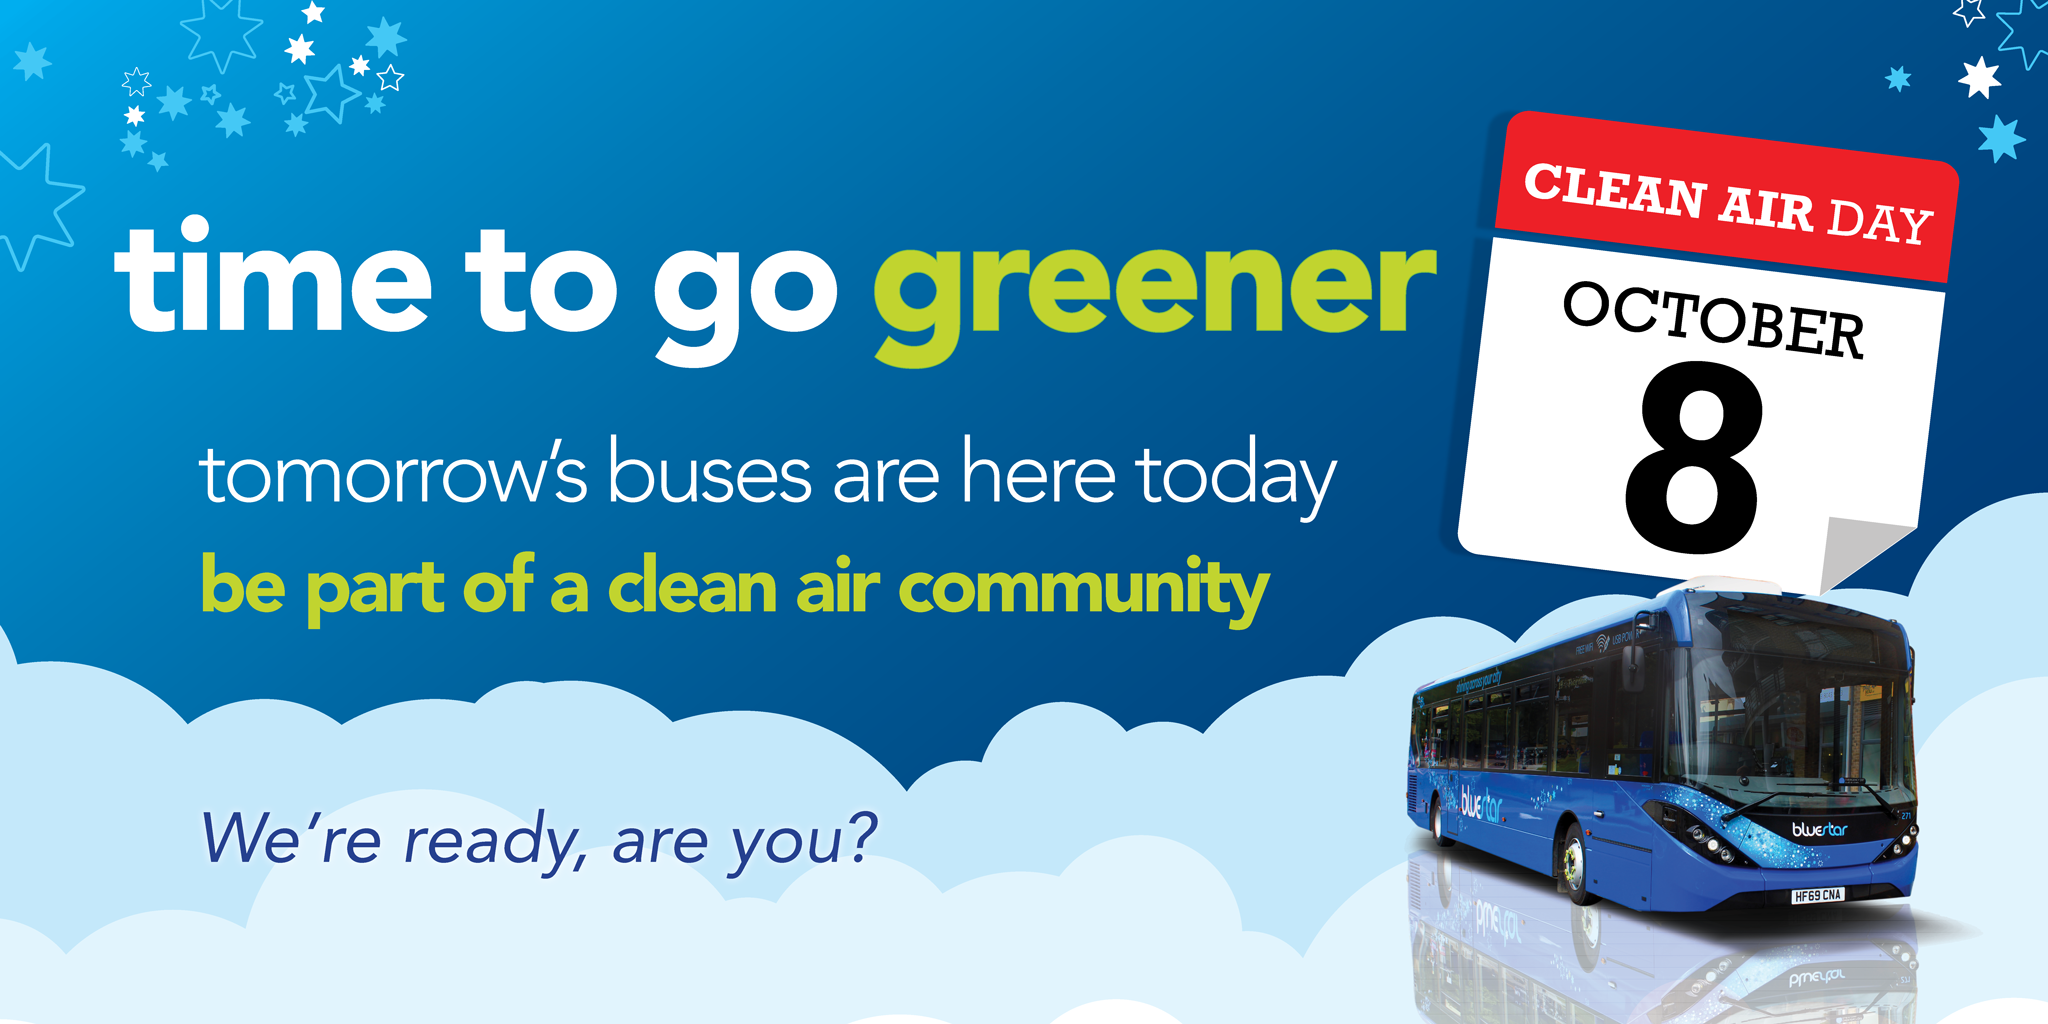 Image saying 'time to go greener. Tomorrow's buses are here today. Be part of a clean air community. We're ready, are you?'